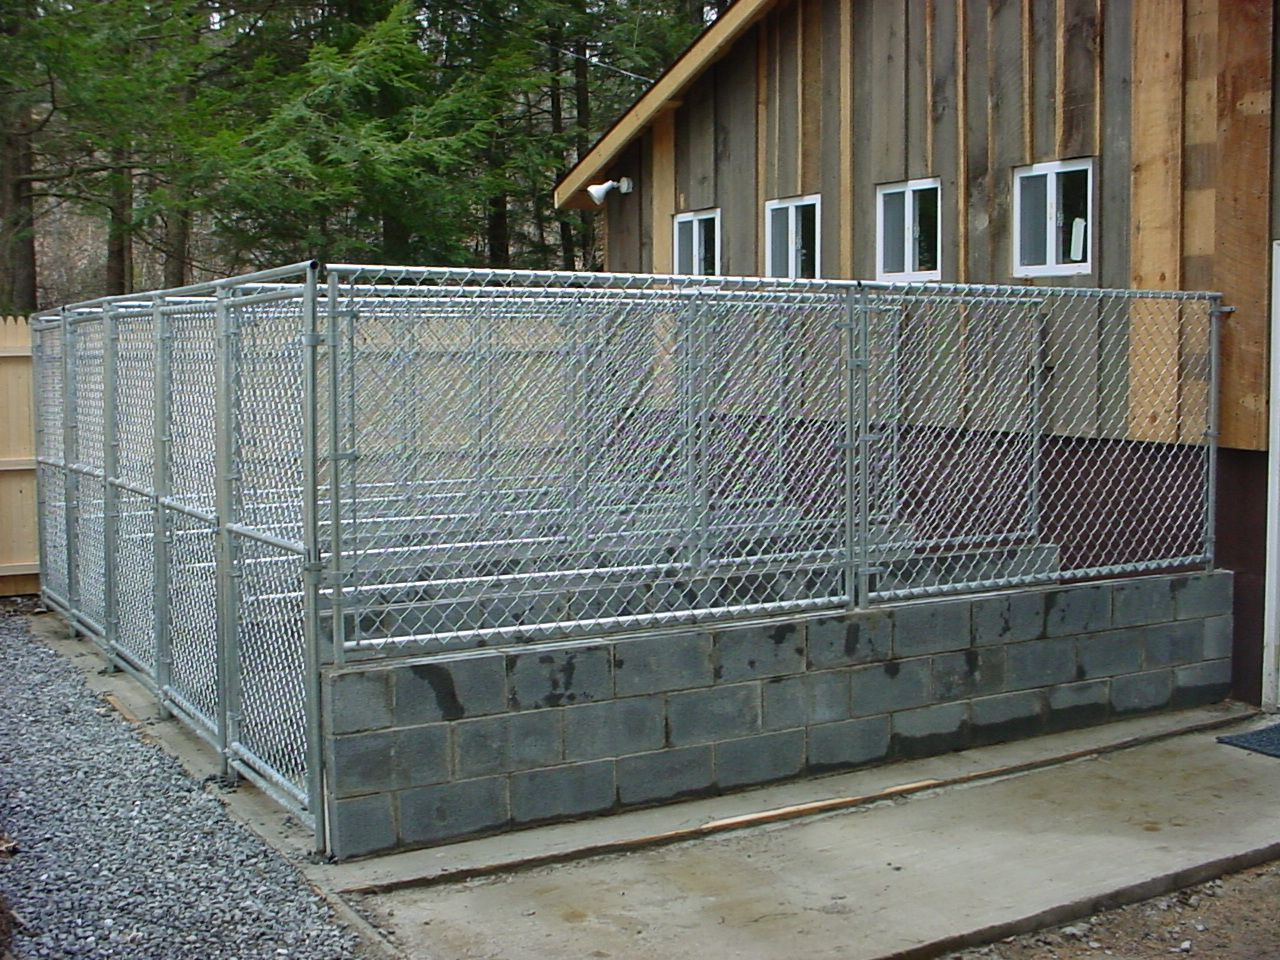 Dog Run Ideas Commercial Dog Kennel Designs Kennelseenfrom Parkinglot